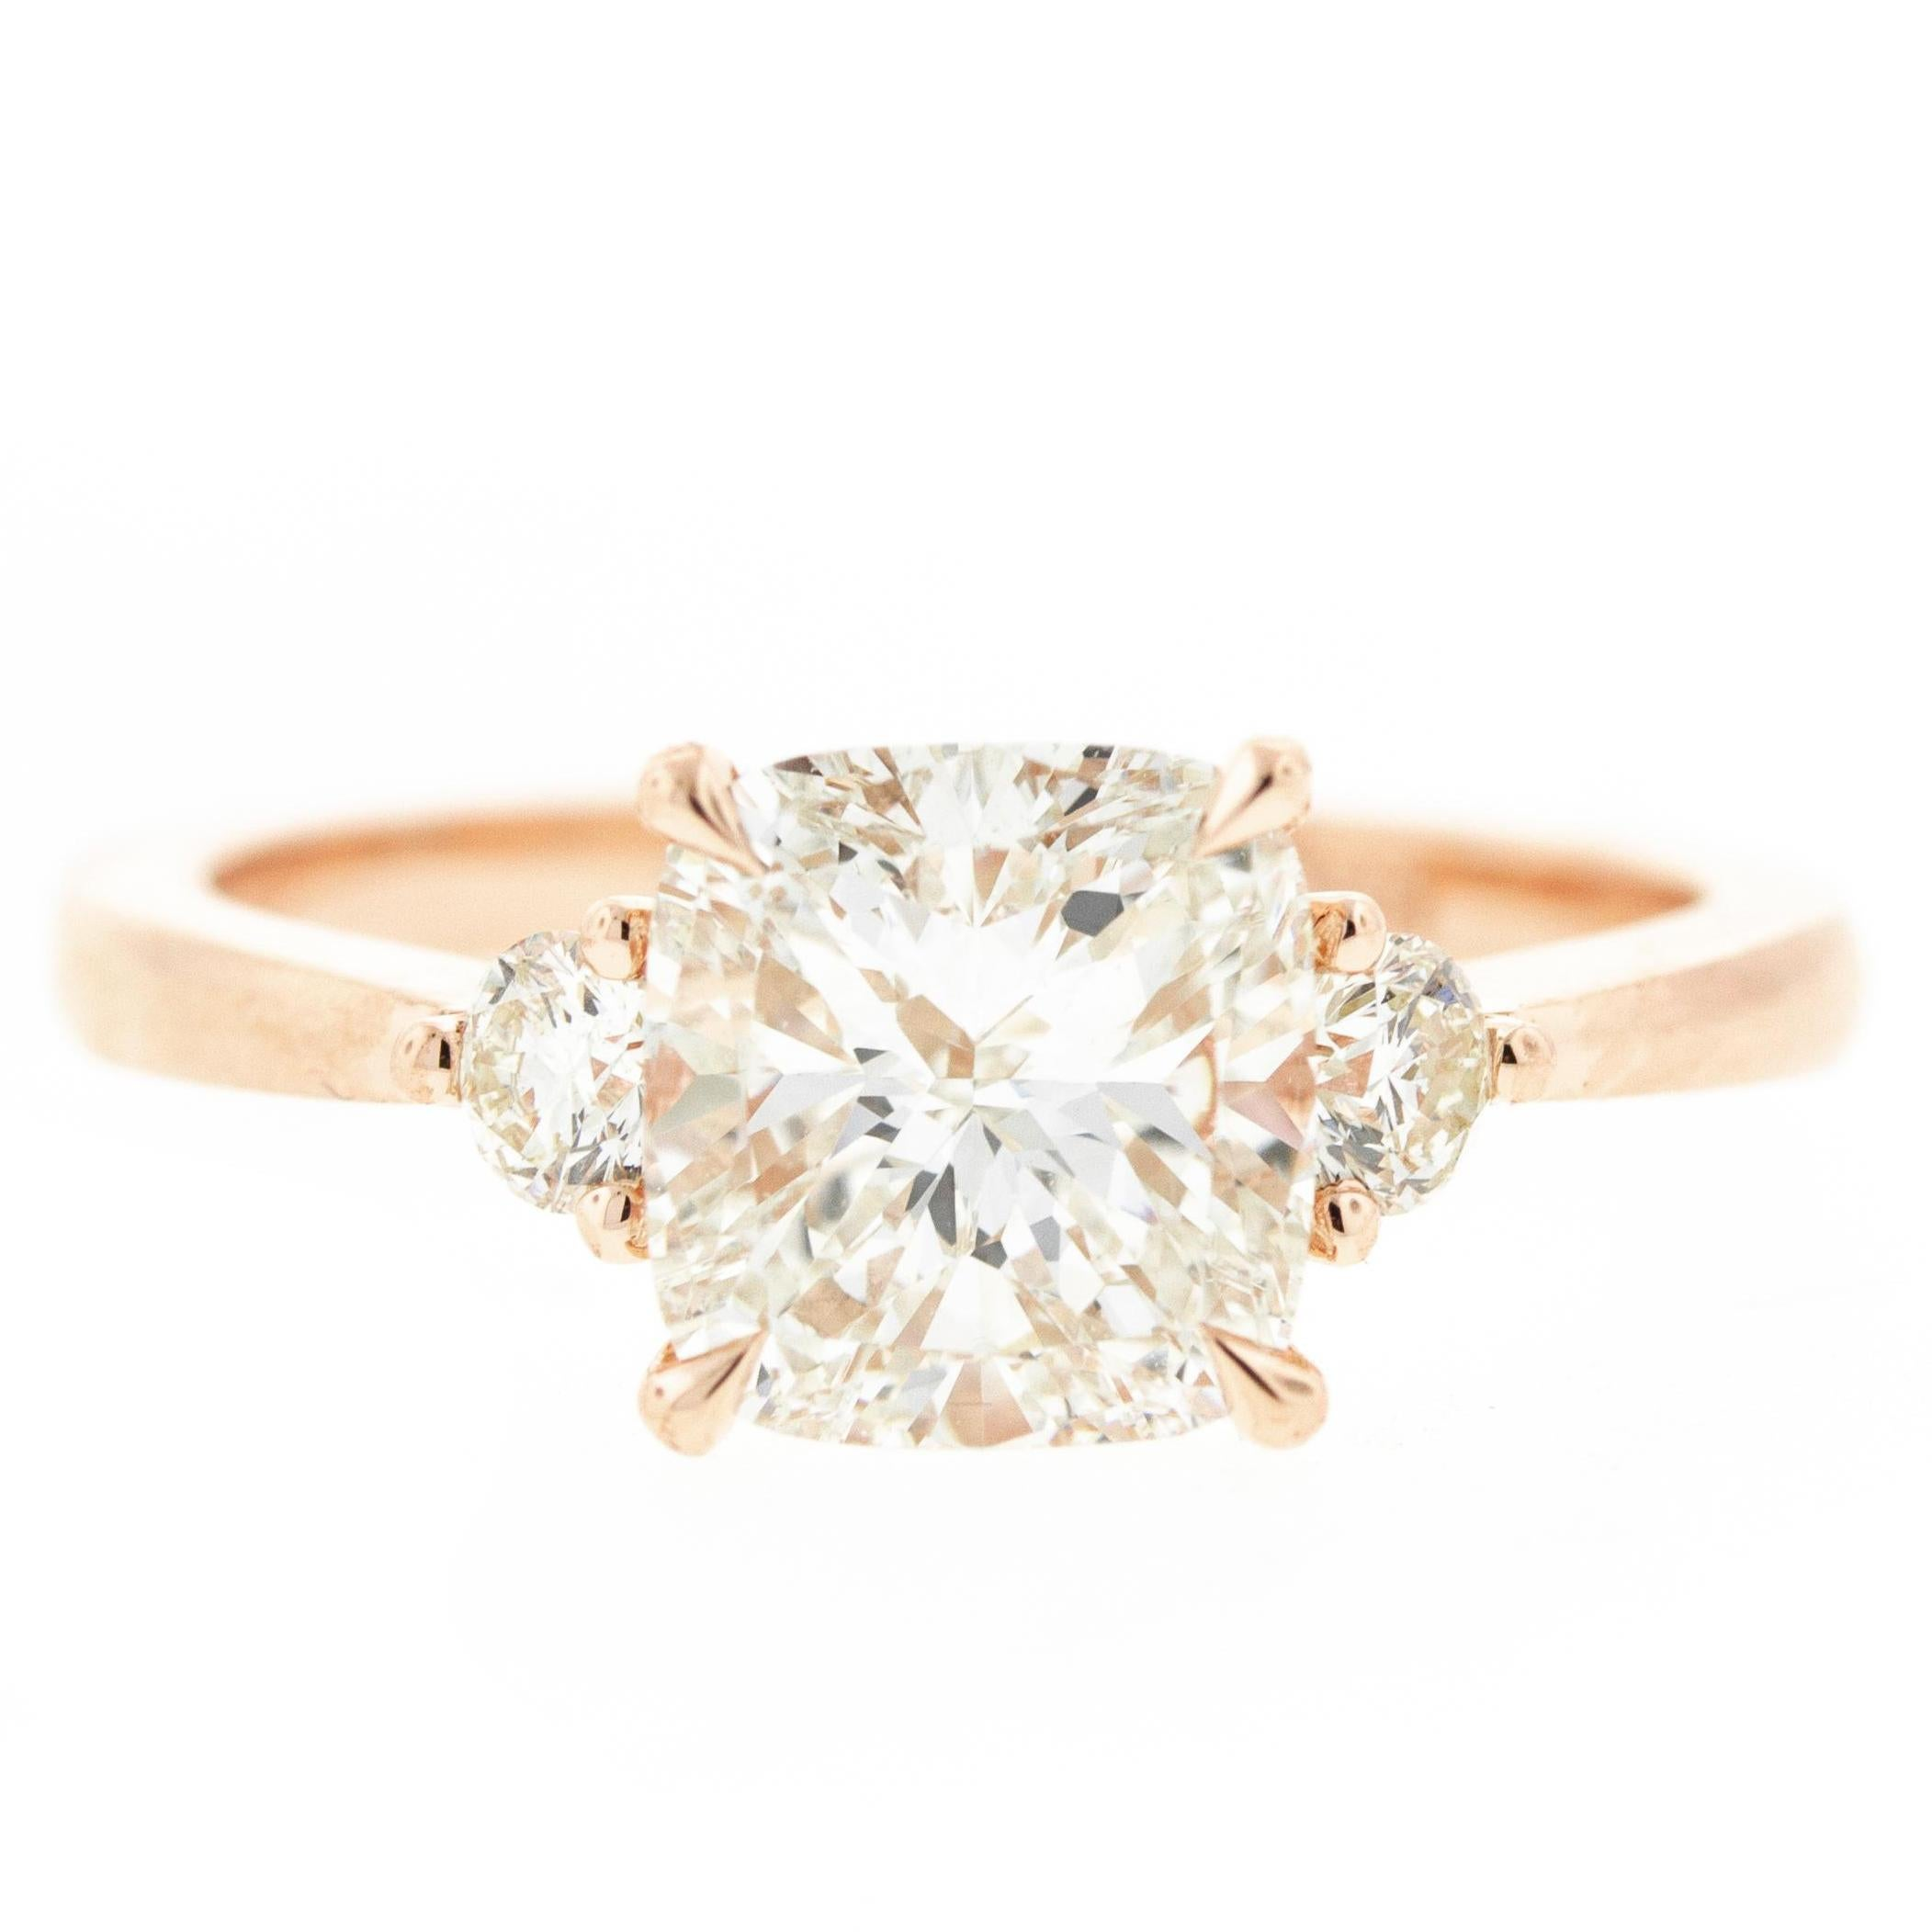 Three-Stone Cushion Cut Diamond Engagement Ring in Rose Gold 'GIA'